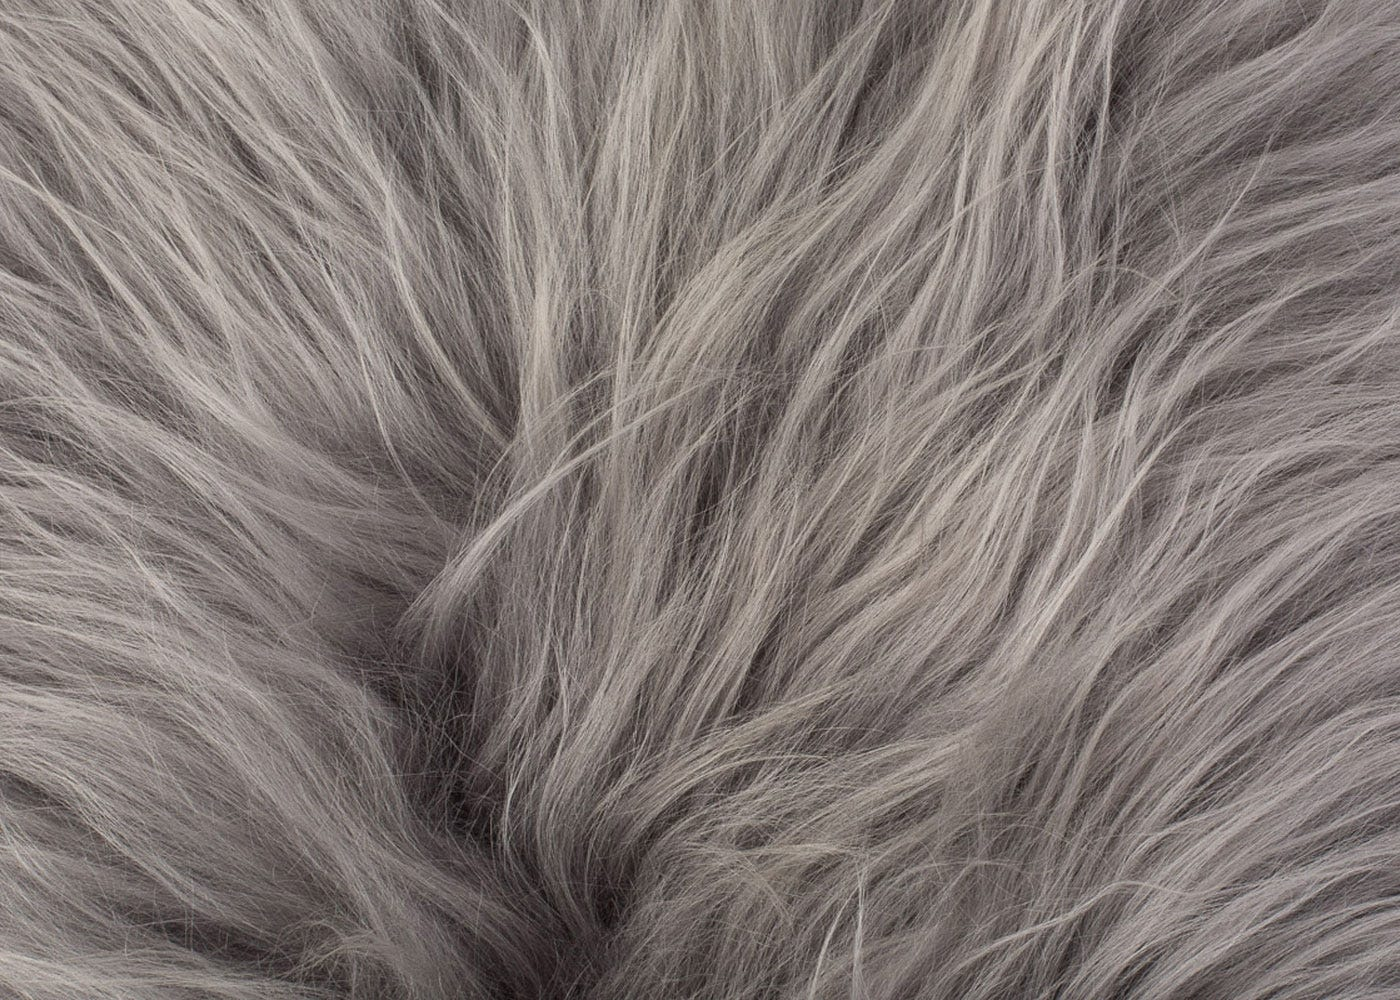 just some of the wonderful textures you can expect (Icelandic Sheepskin Rug Silver Grey)